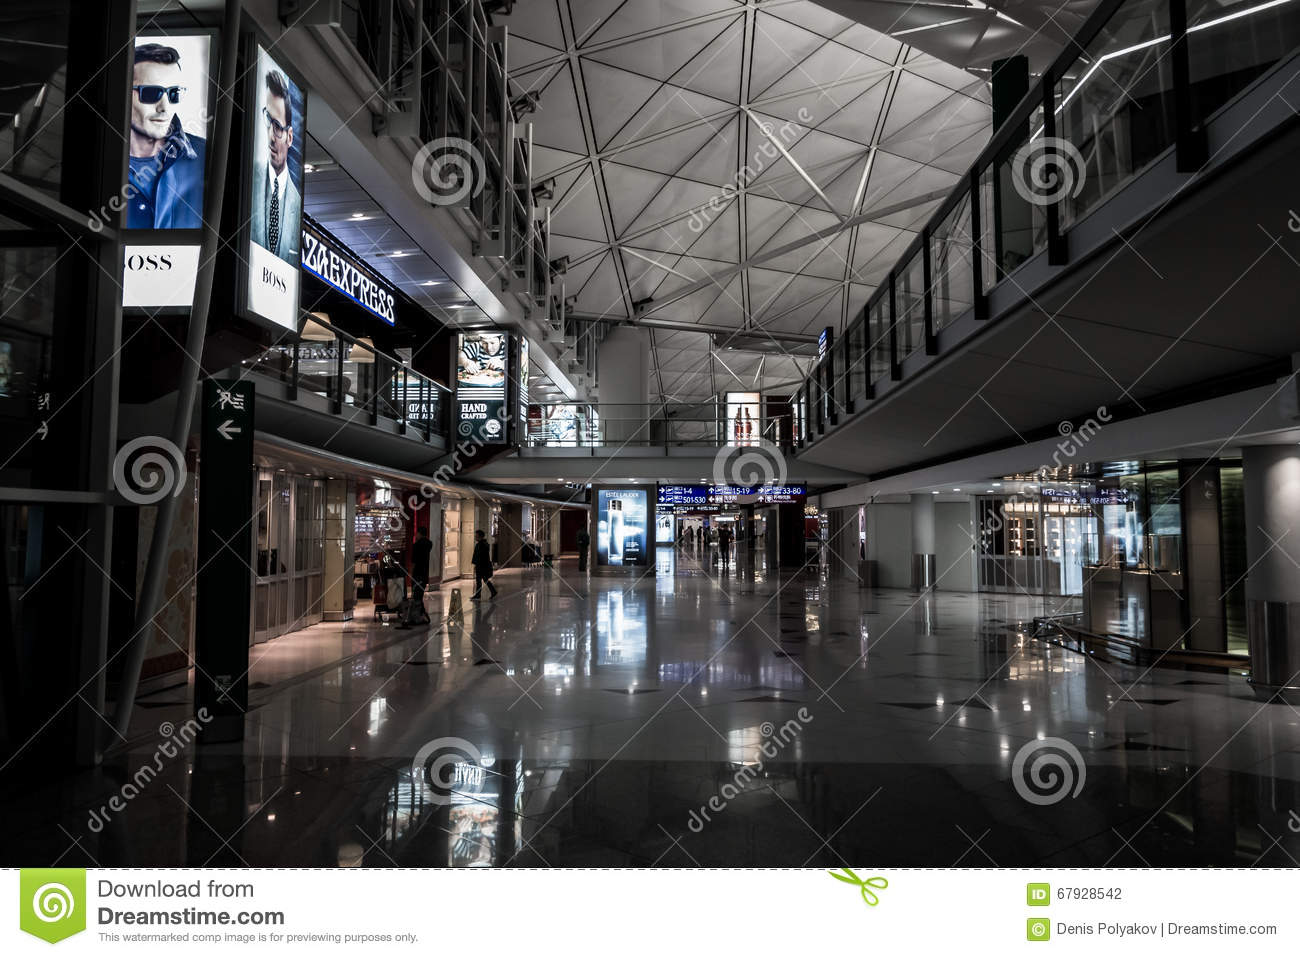 Airport Design that Links Style with Function